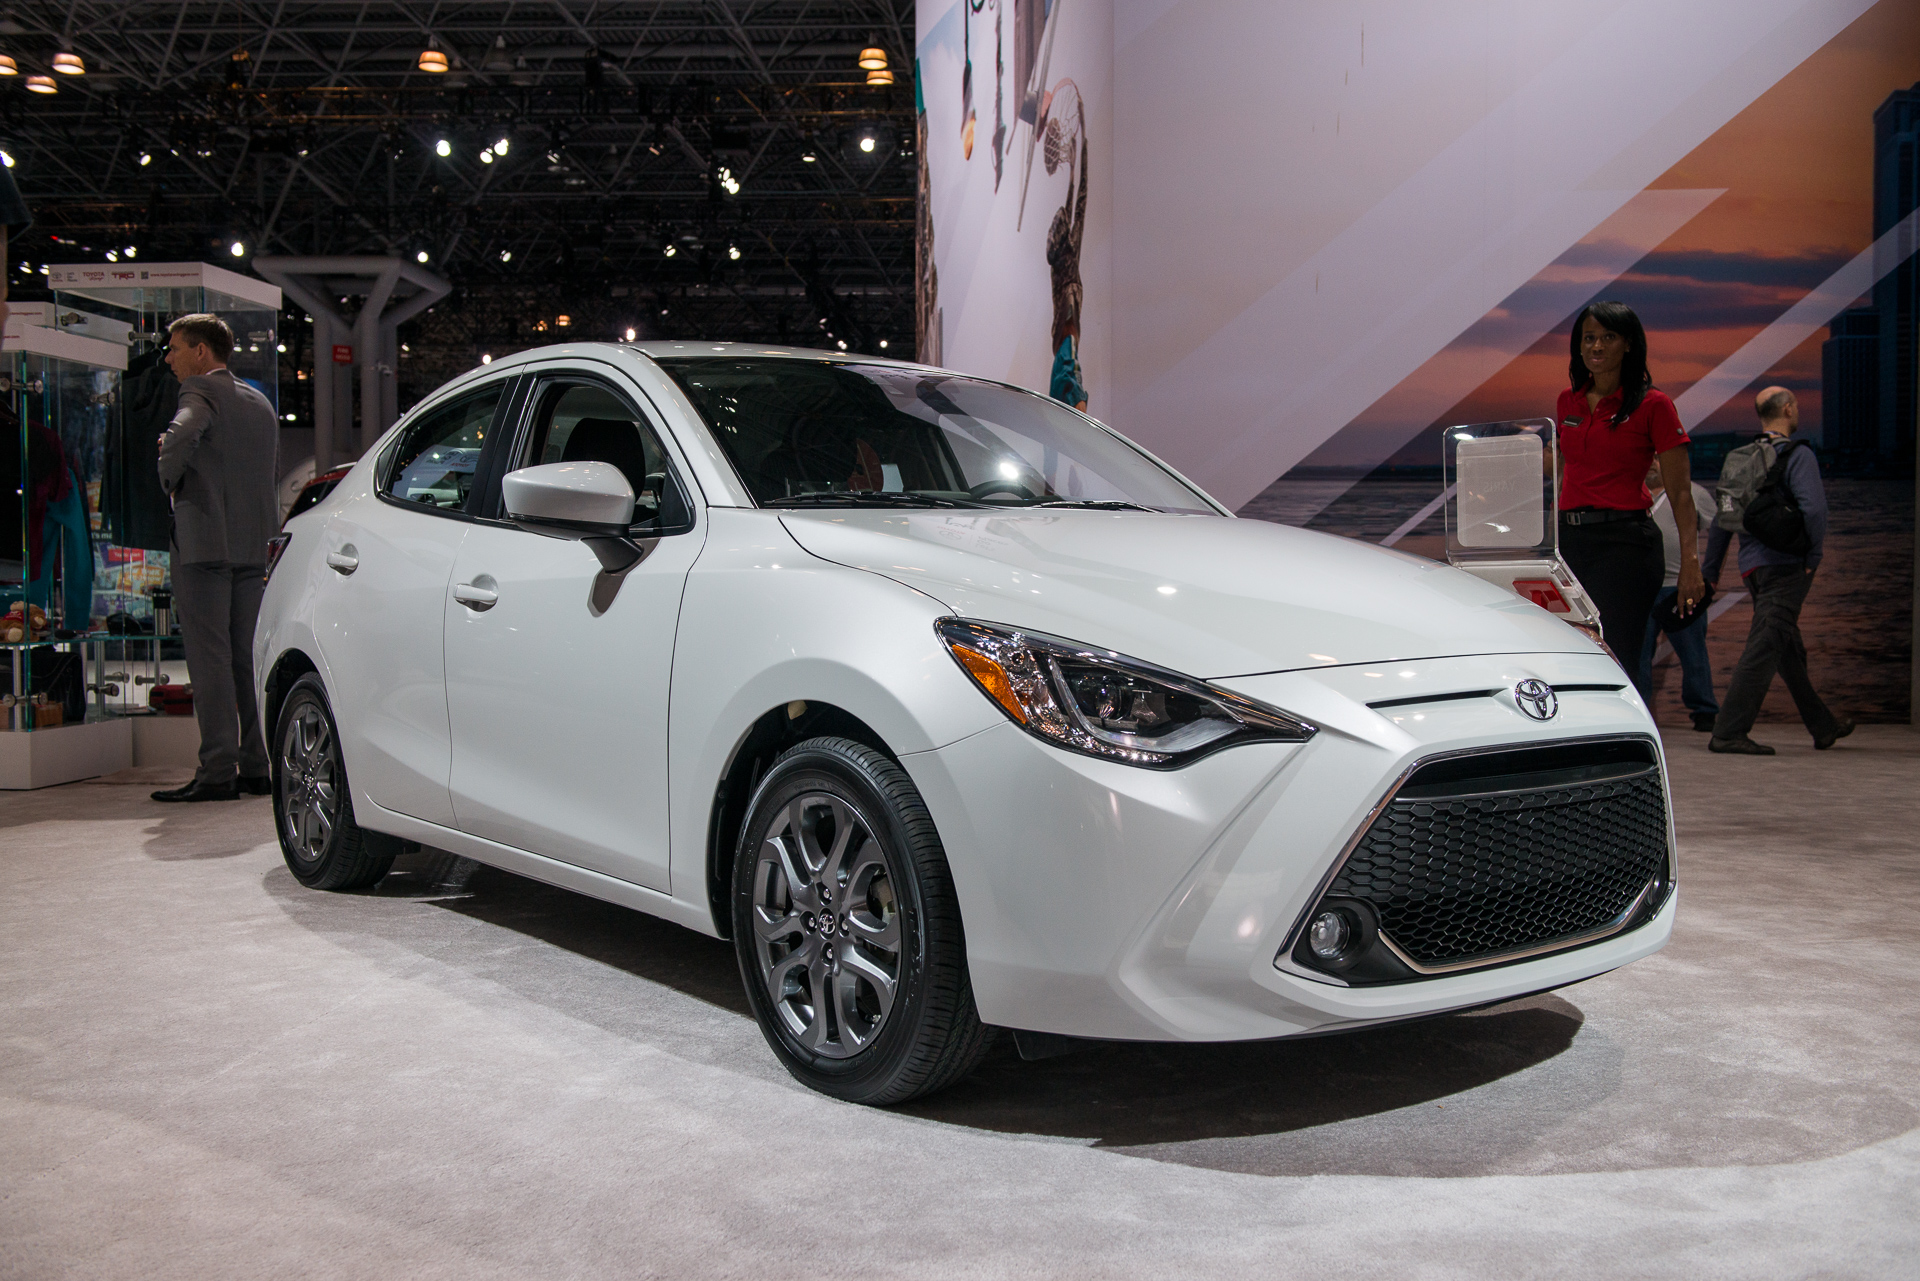 2019 Toyota Yaris Sedan More Choices To Make